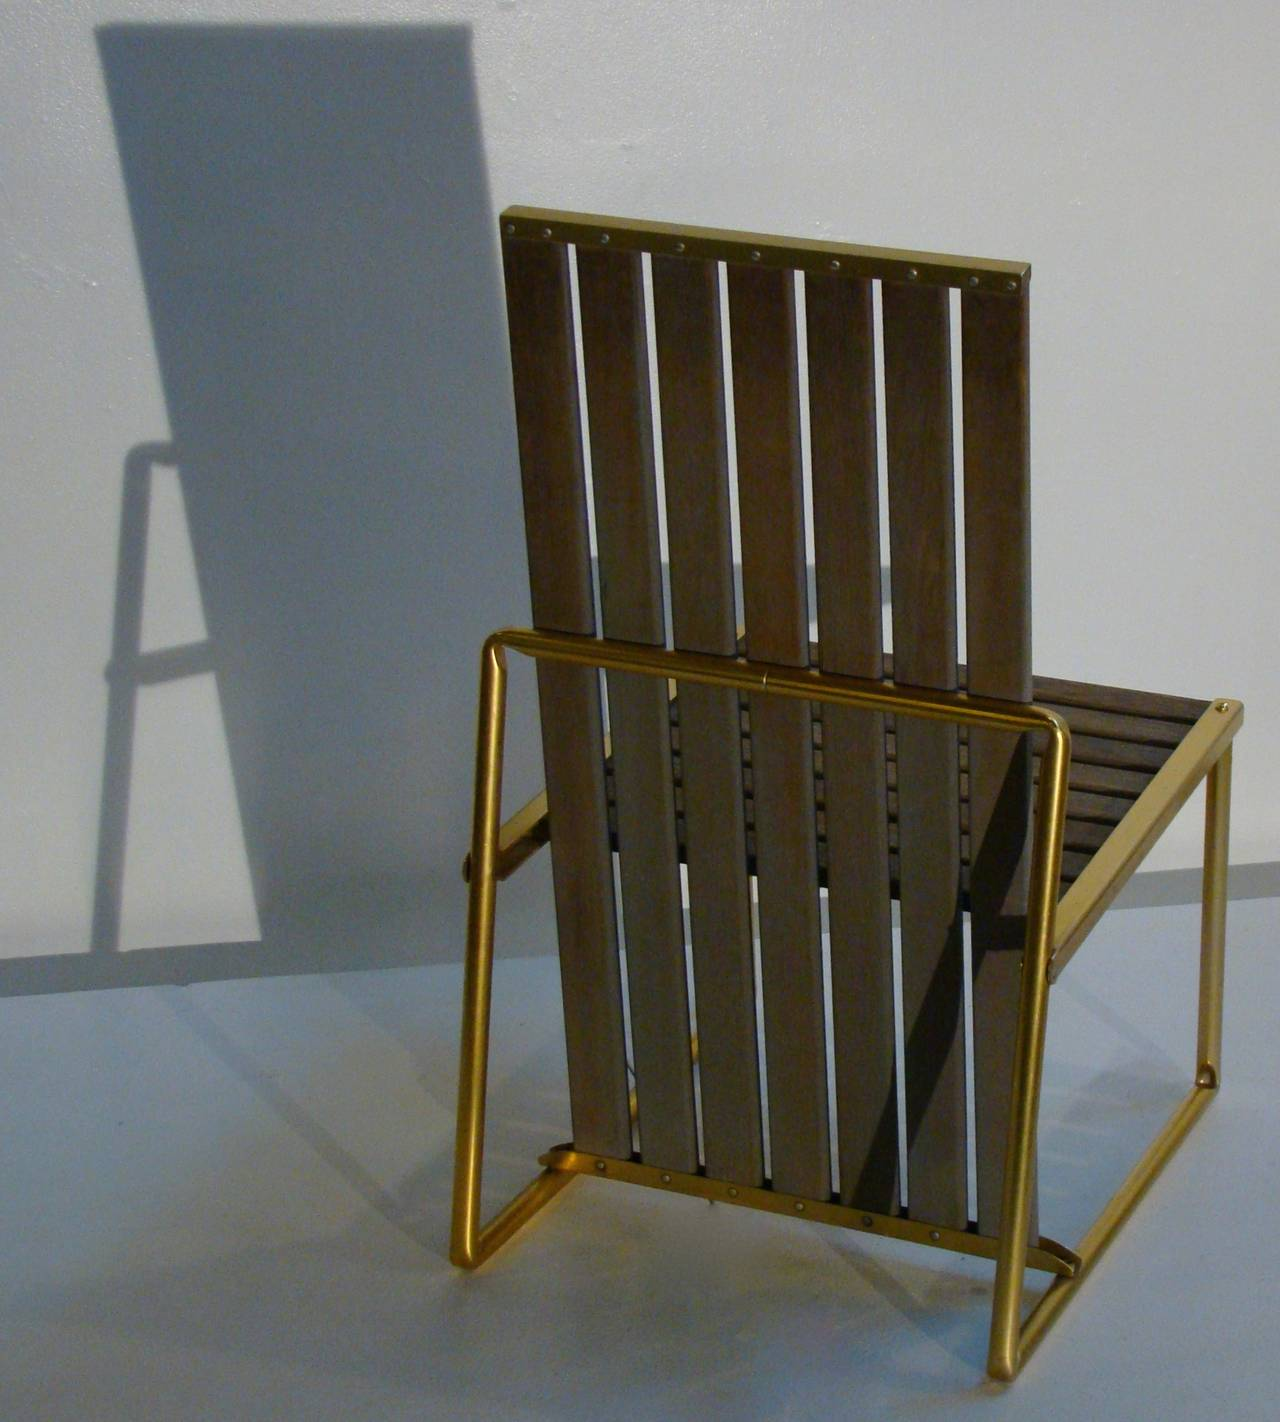 Gartenmobel Holz Rustikal Selber Bauen : Teak and Aluminum IndoorOutdoor Chairs by Troy Sunshade SATURDAY